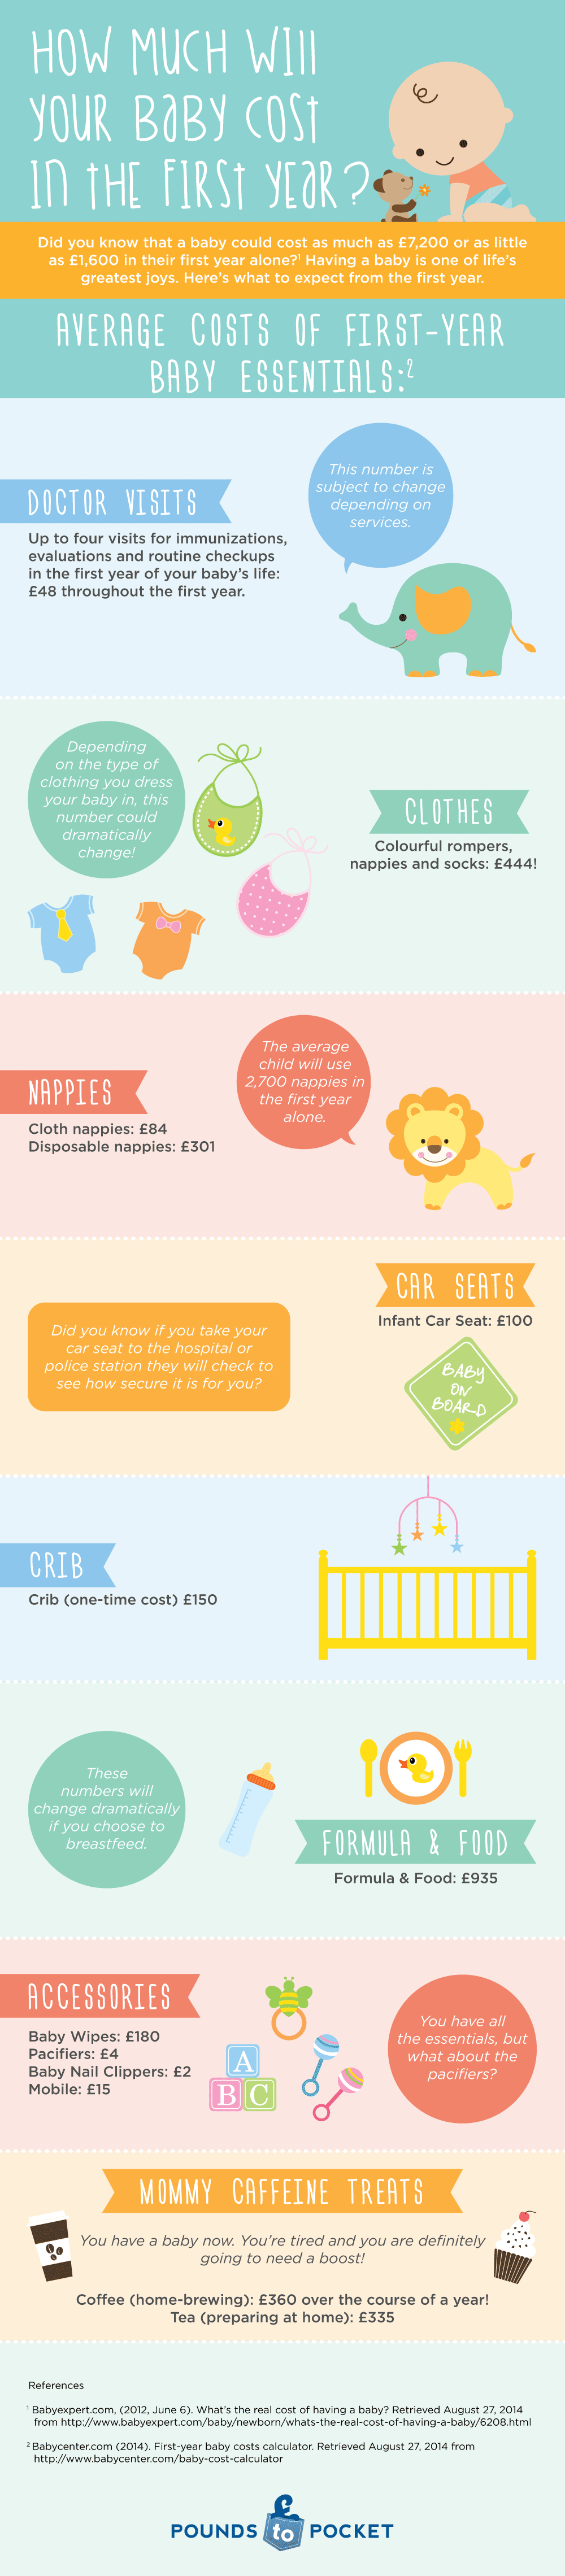 How Much Will Your Baby Cost In The First Year Infographic